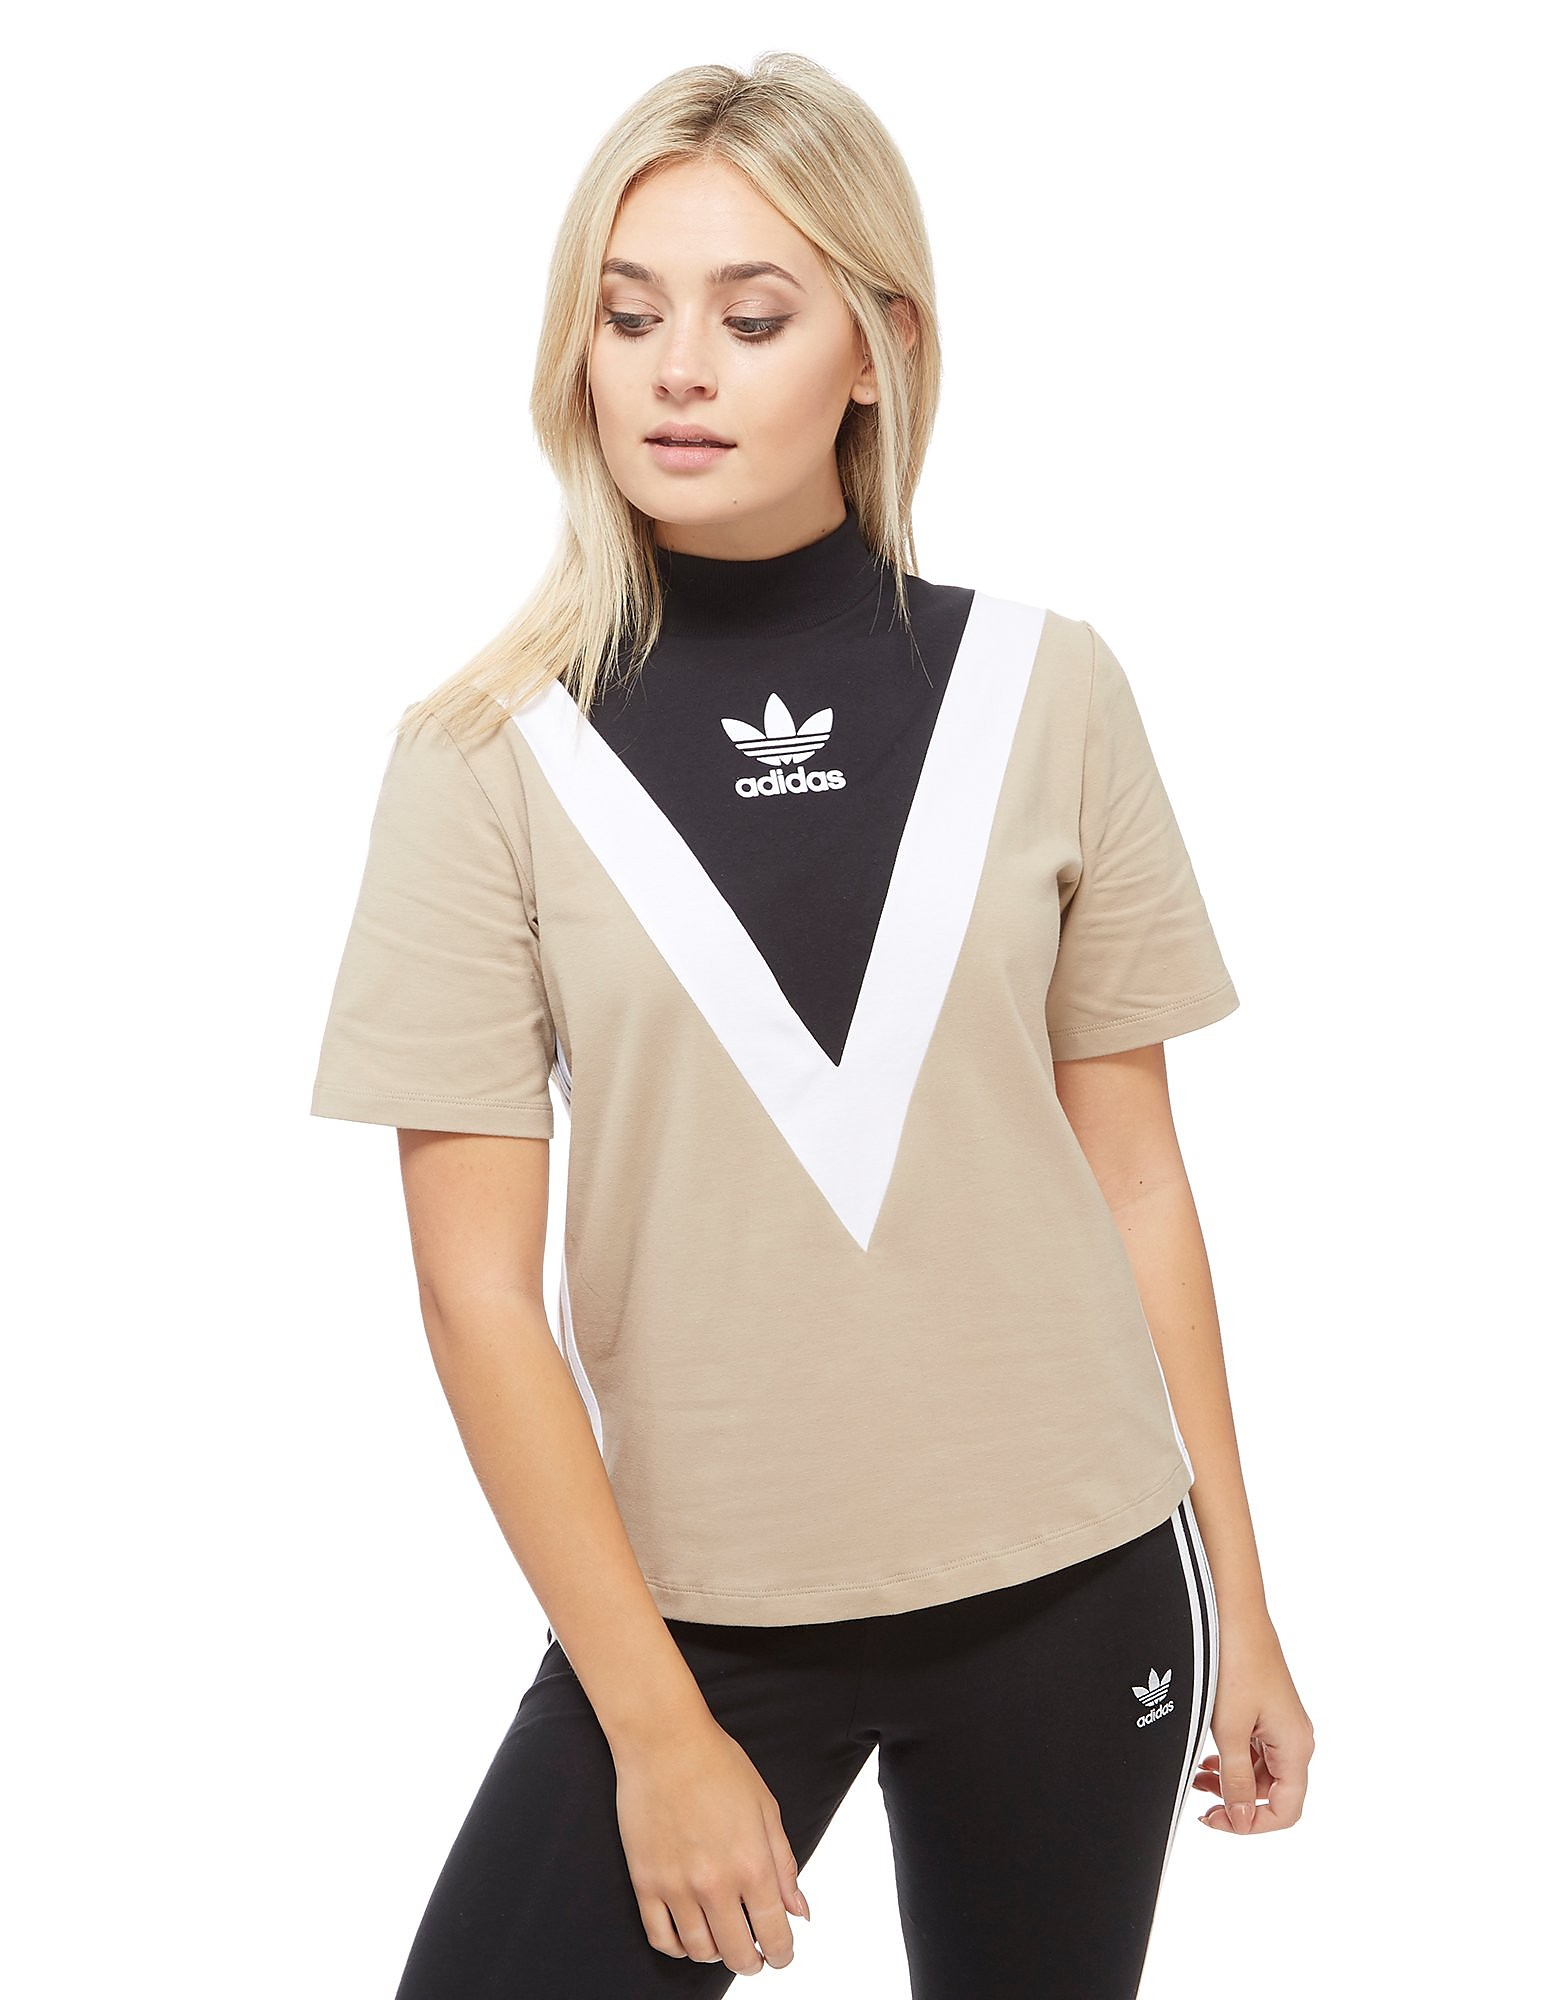 adidas Originals camiseta High Neck Chevron